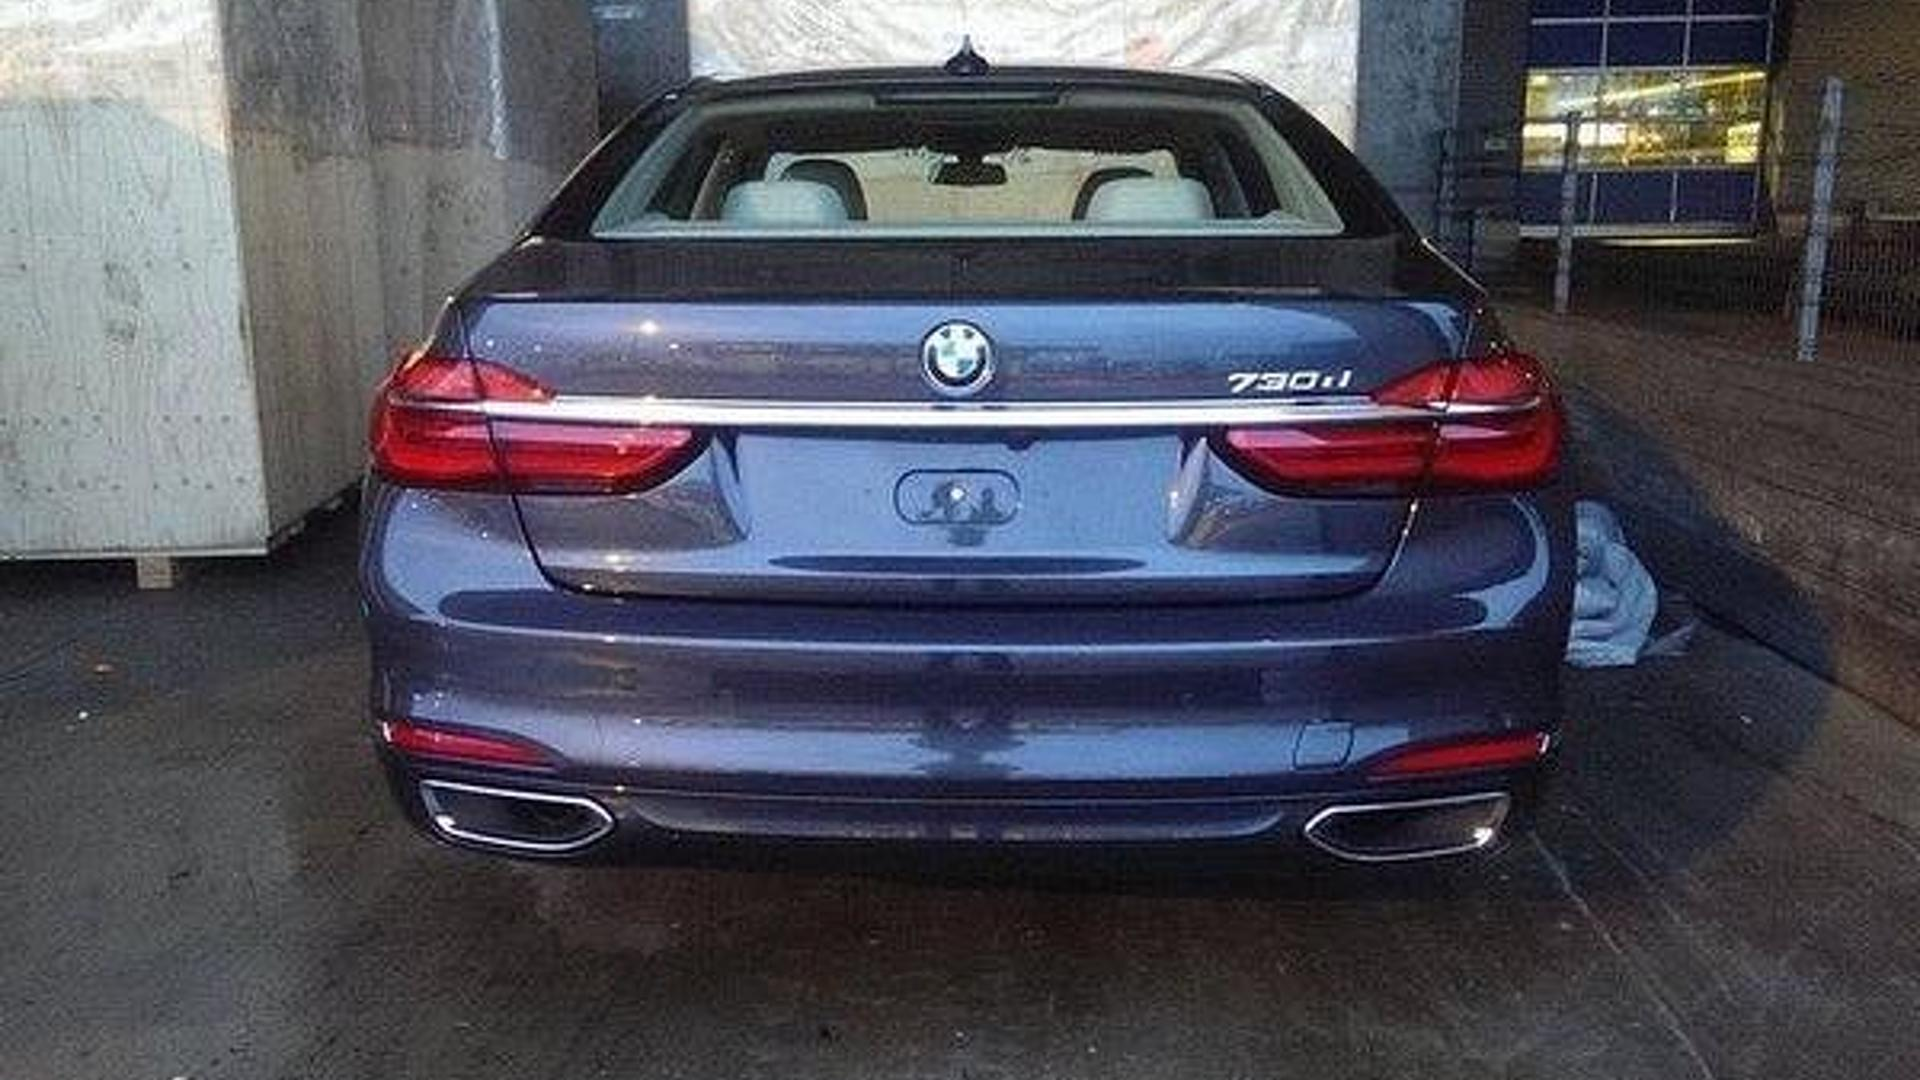 2016 BMW 7 Series Getting Panorama Glass Roof Sky Lounge And Leather Engine Cover